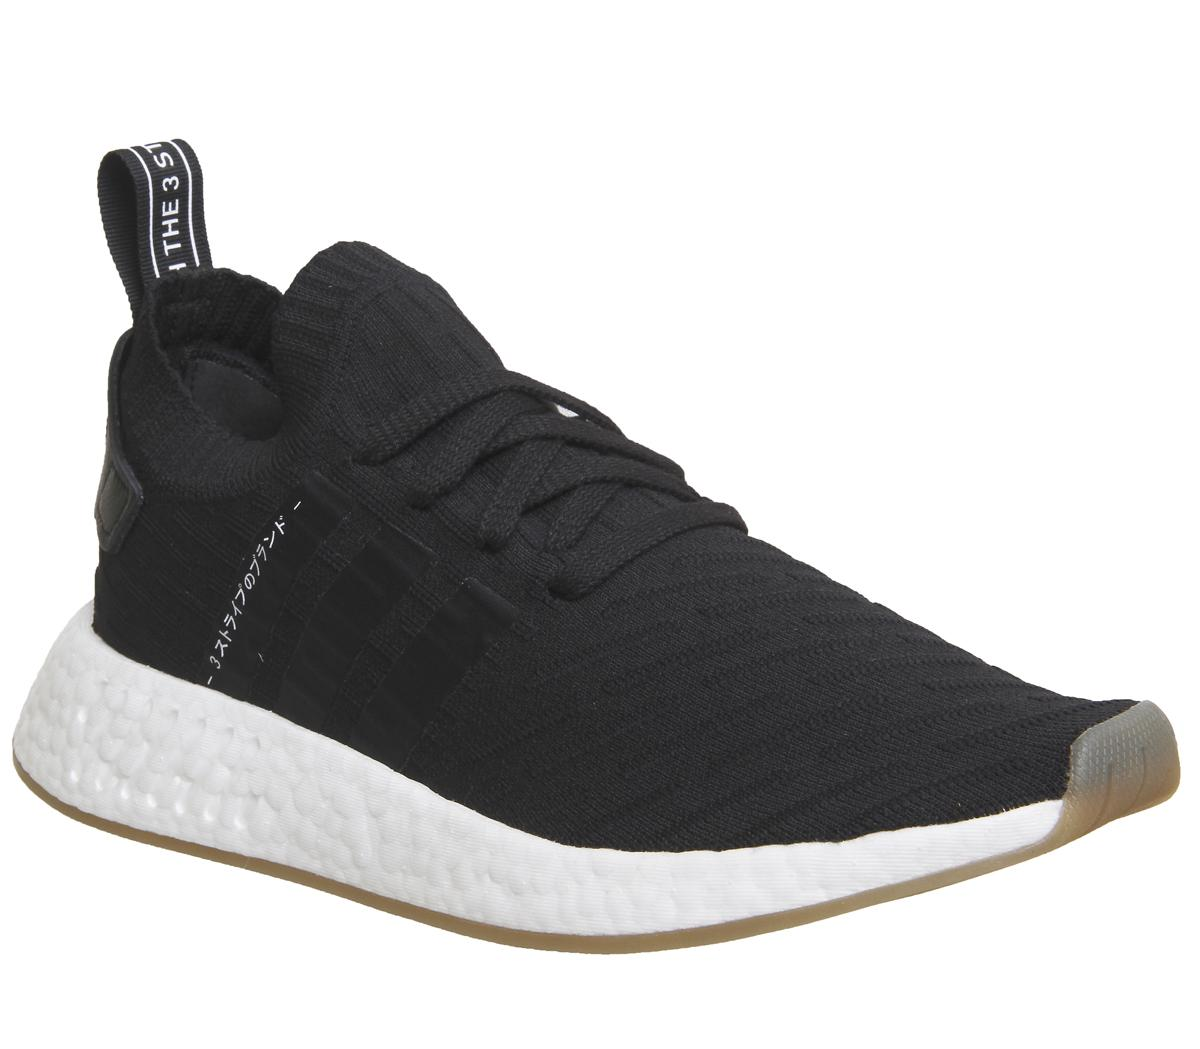 Adidas Nmd R2 Pk Trainers Black White Unisex Sports